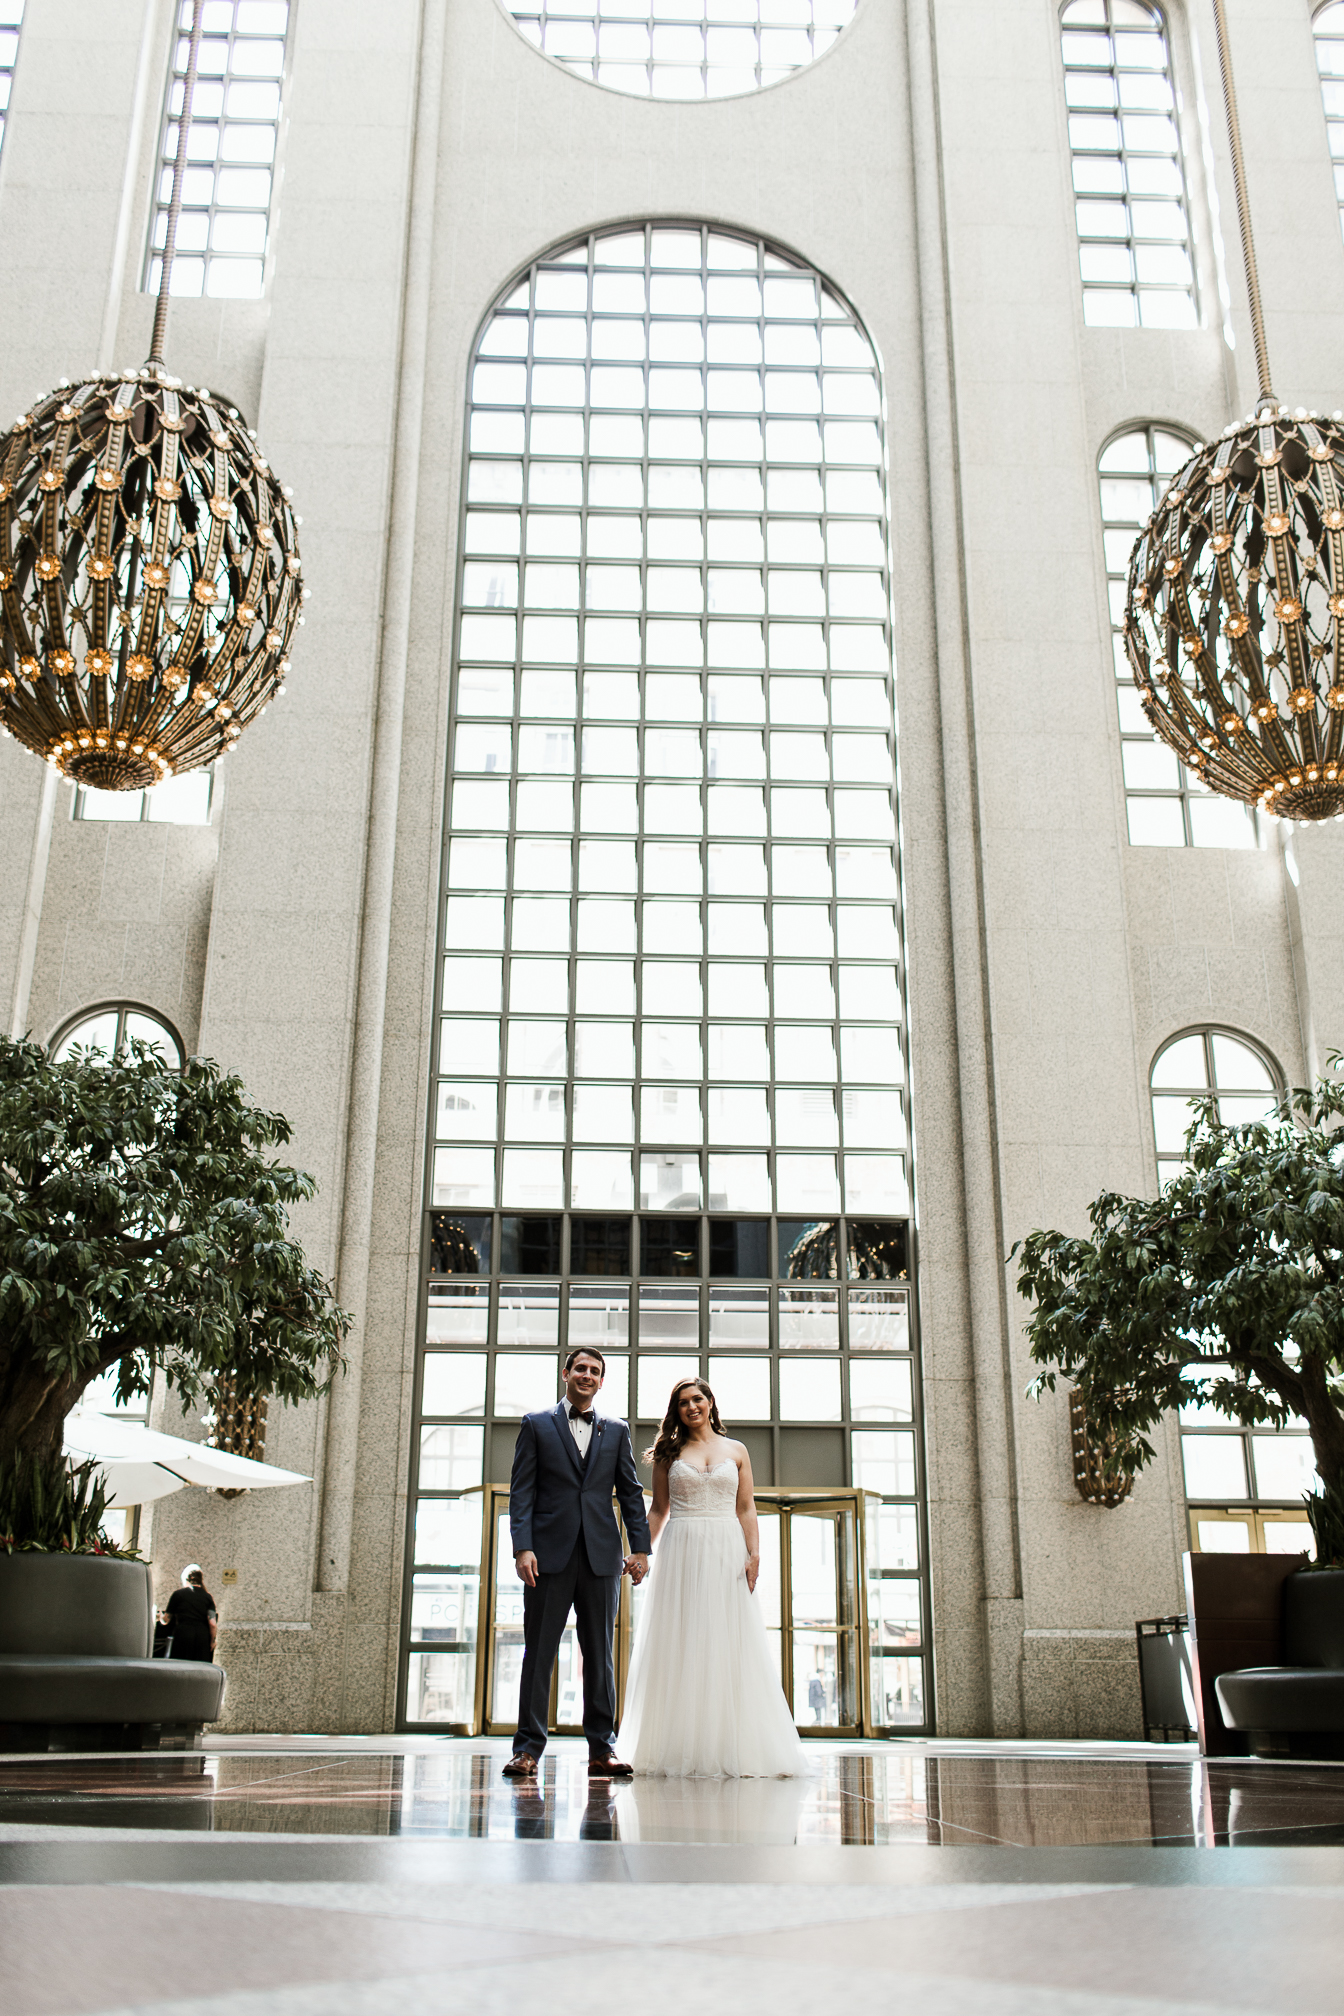 Gianna Keiko Atlanta NYC California Wedding Elopement Photographer_Sneak Peek-10.jpg